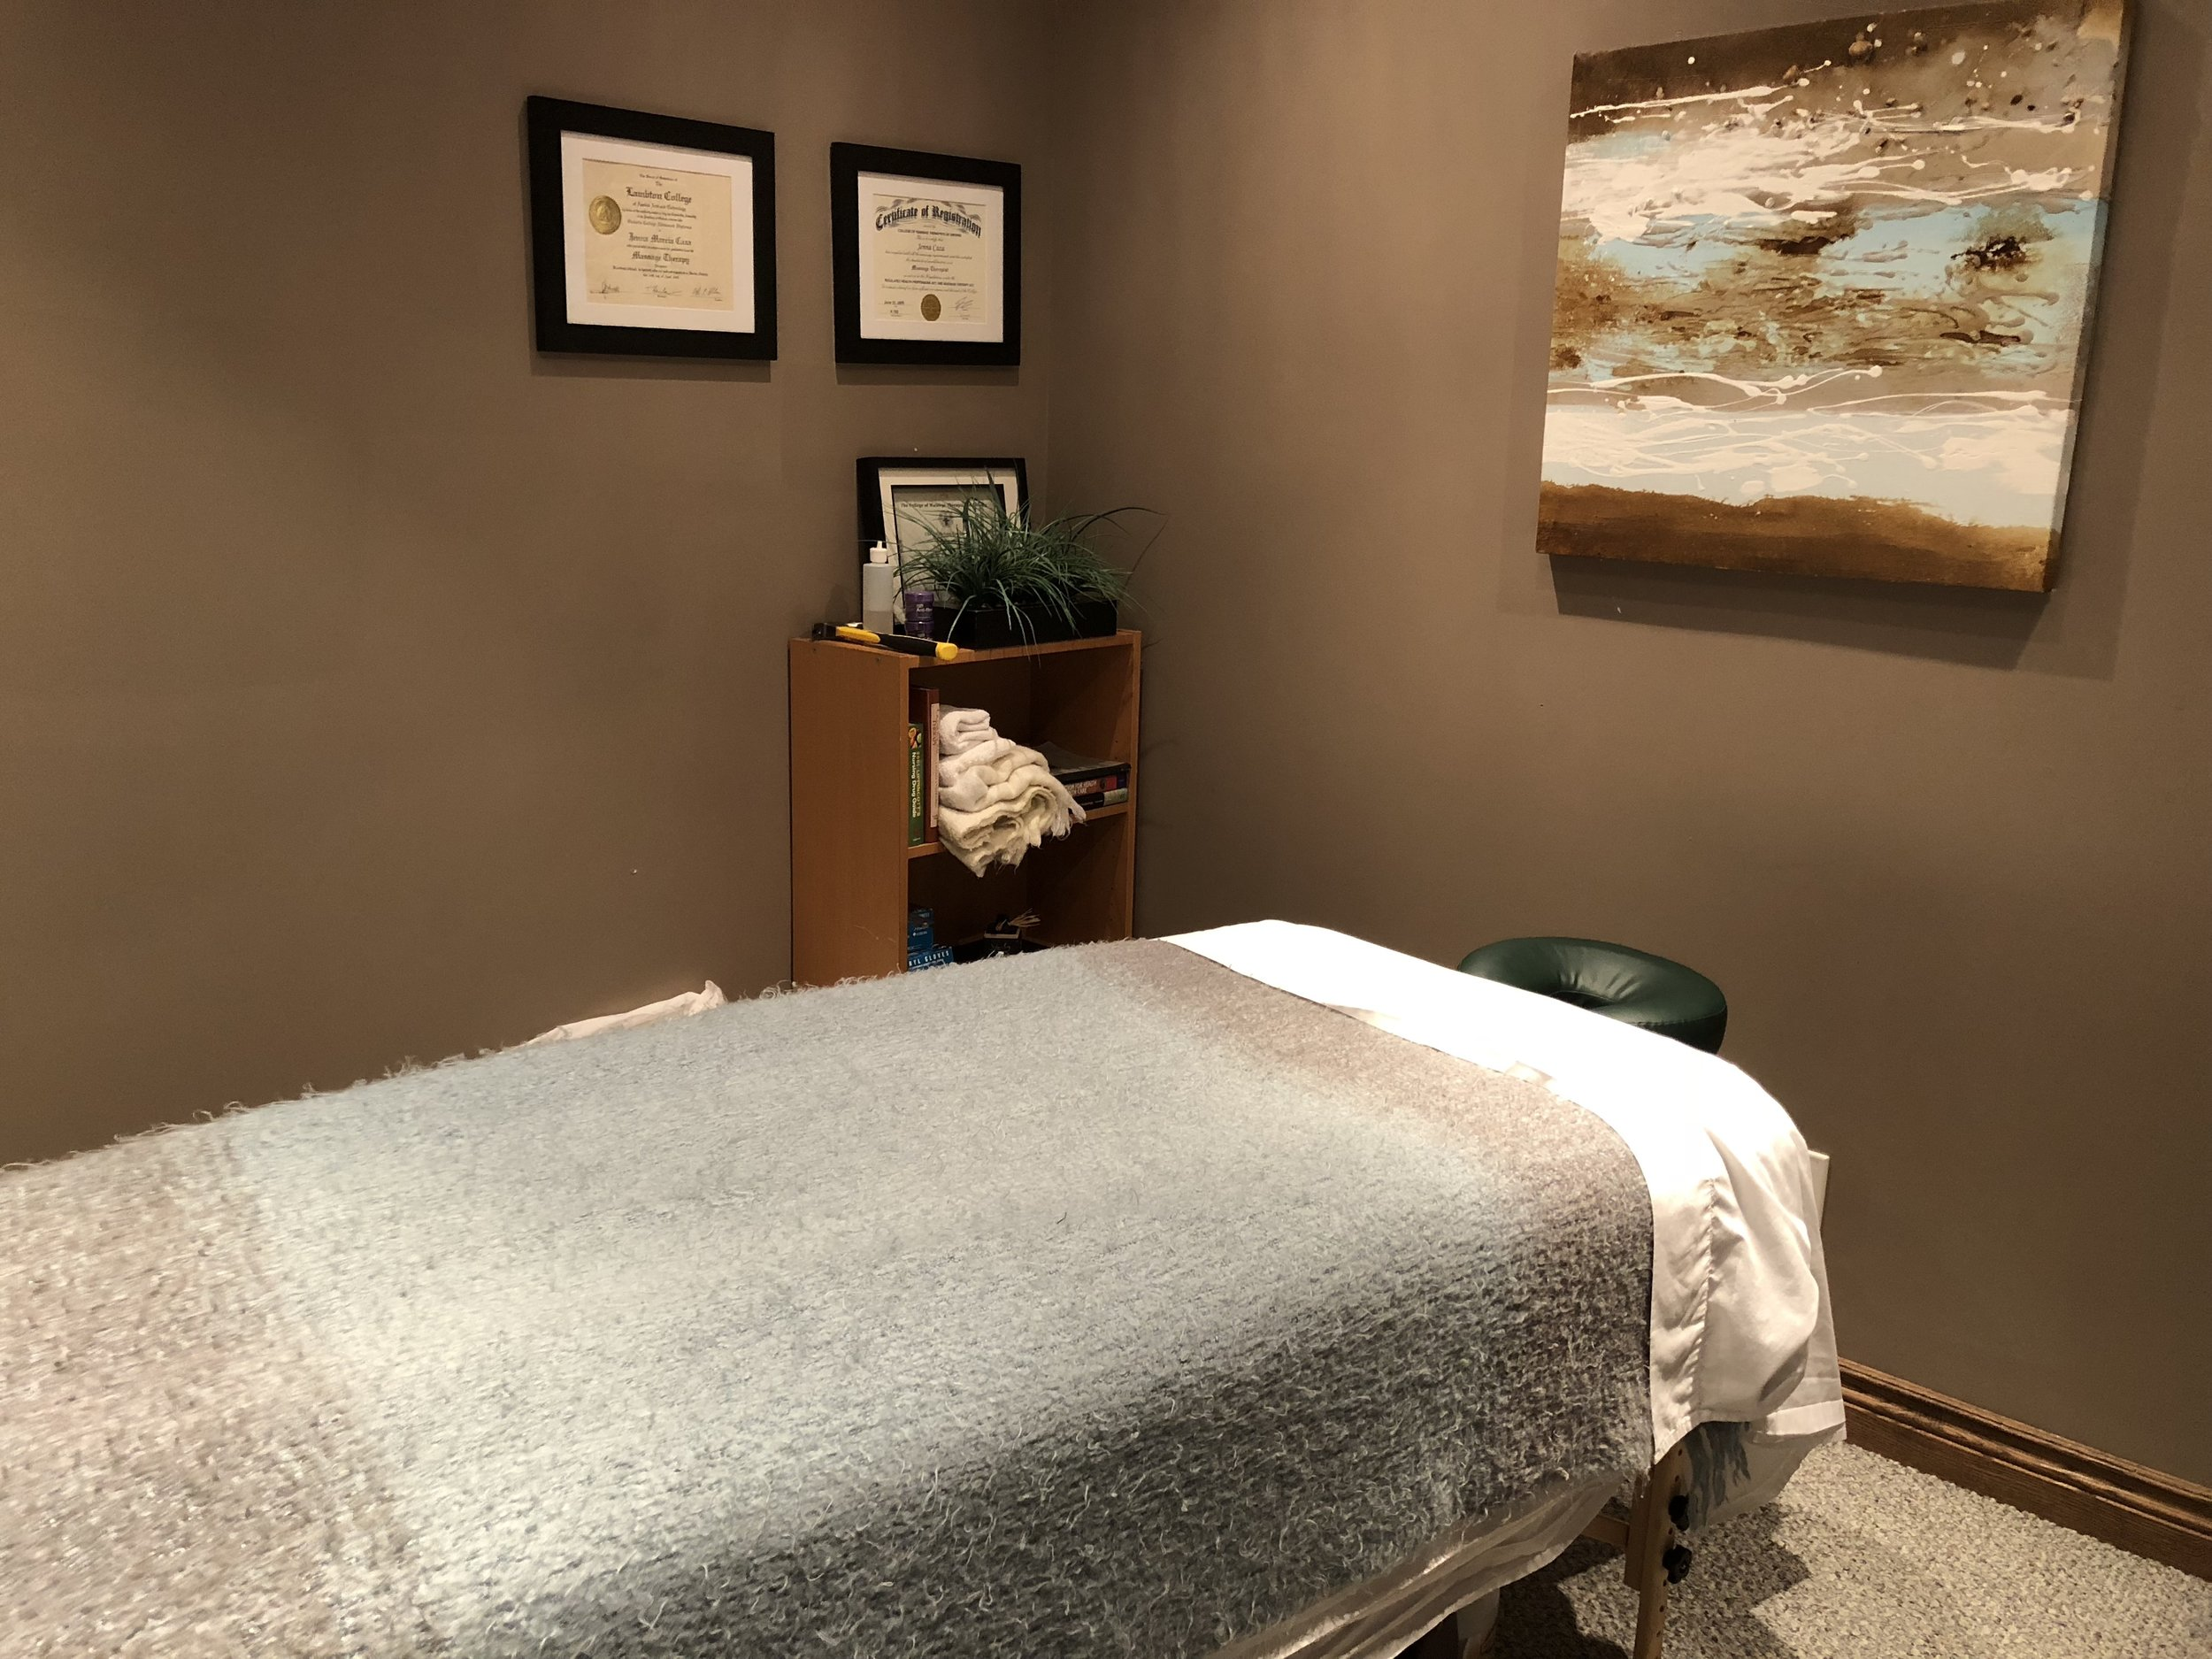 Whether you are an athlete or work in a office, massage therapy is a great way to unwind and rehab.